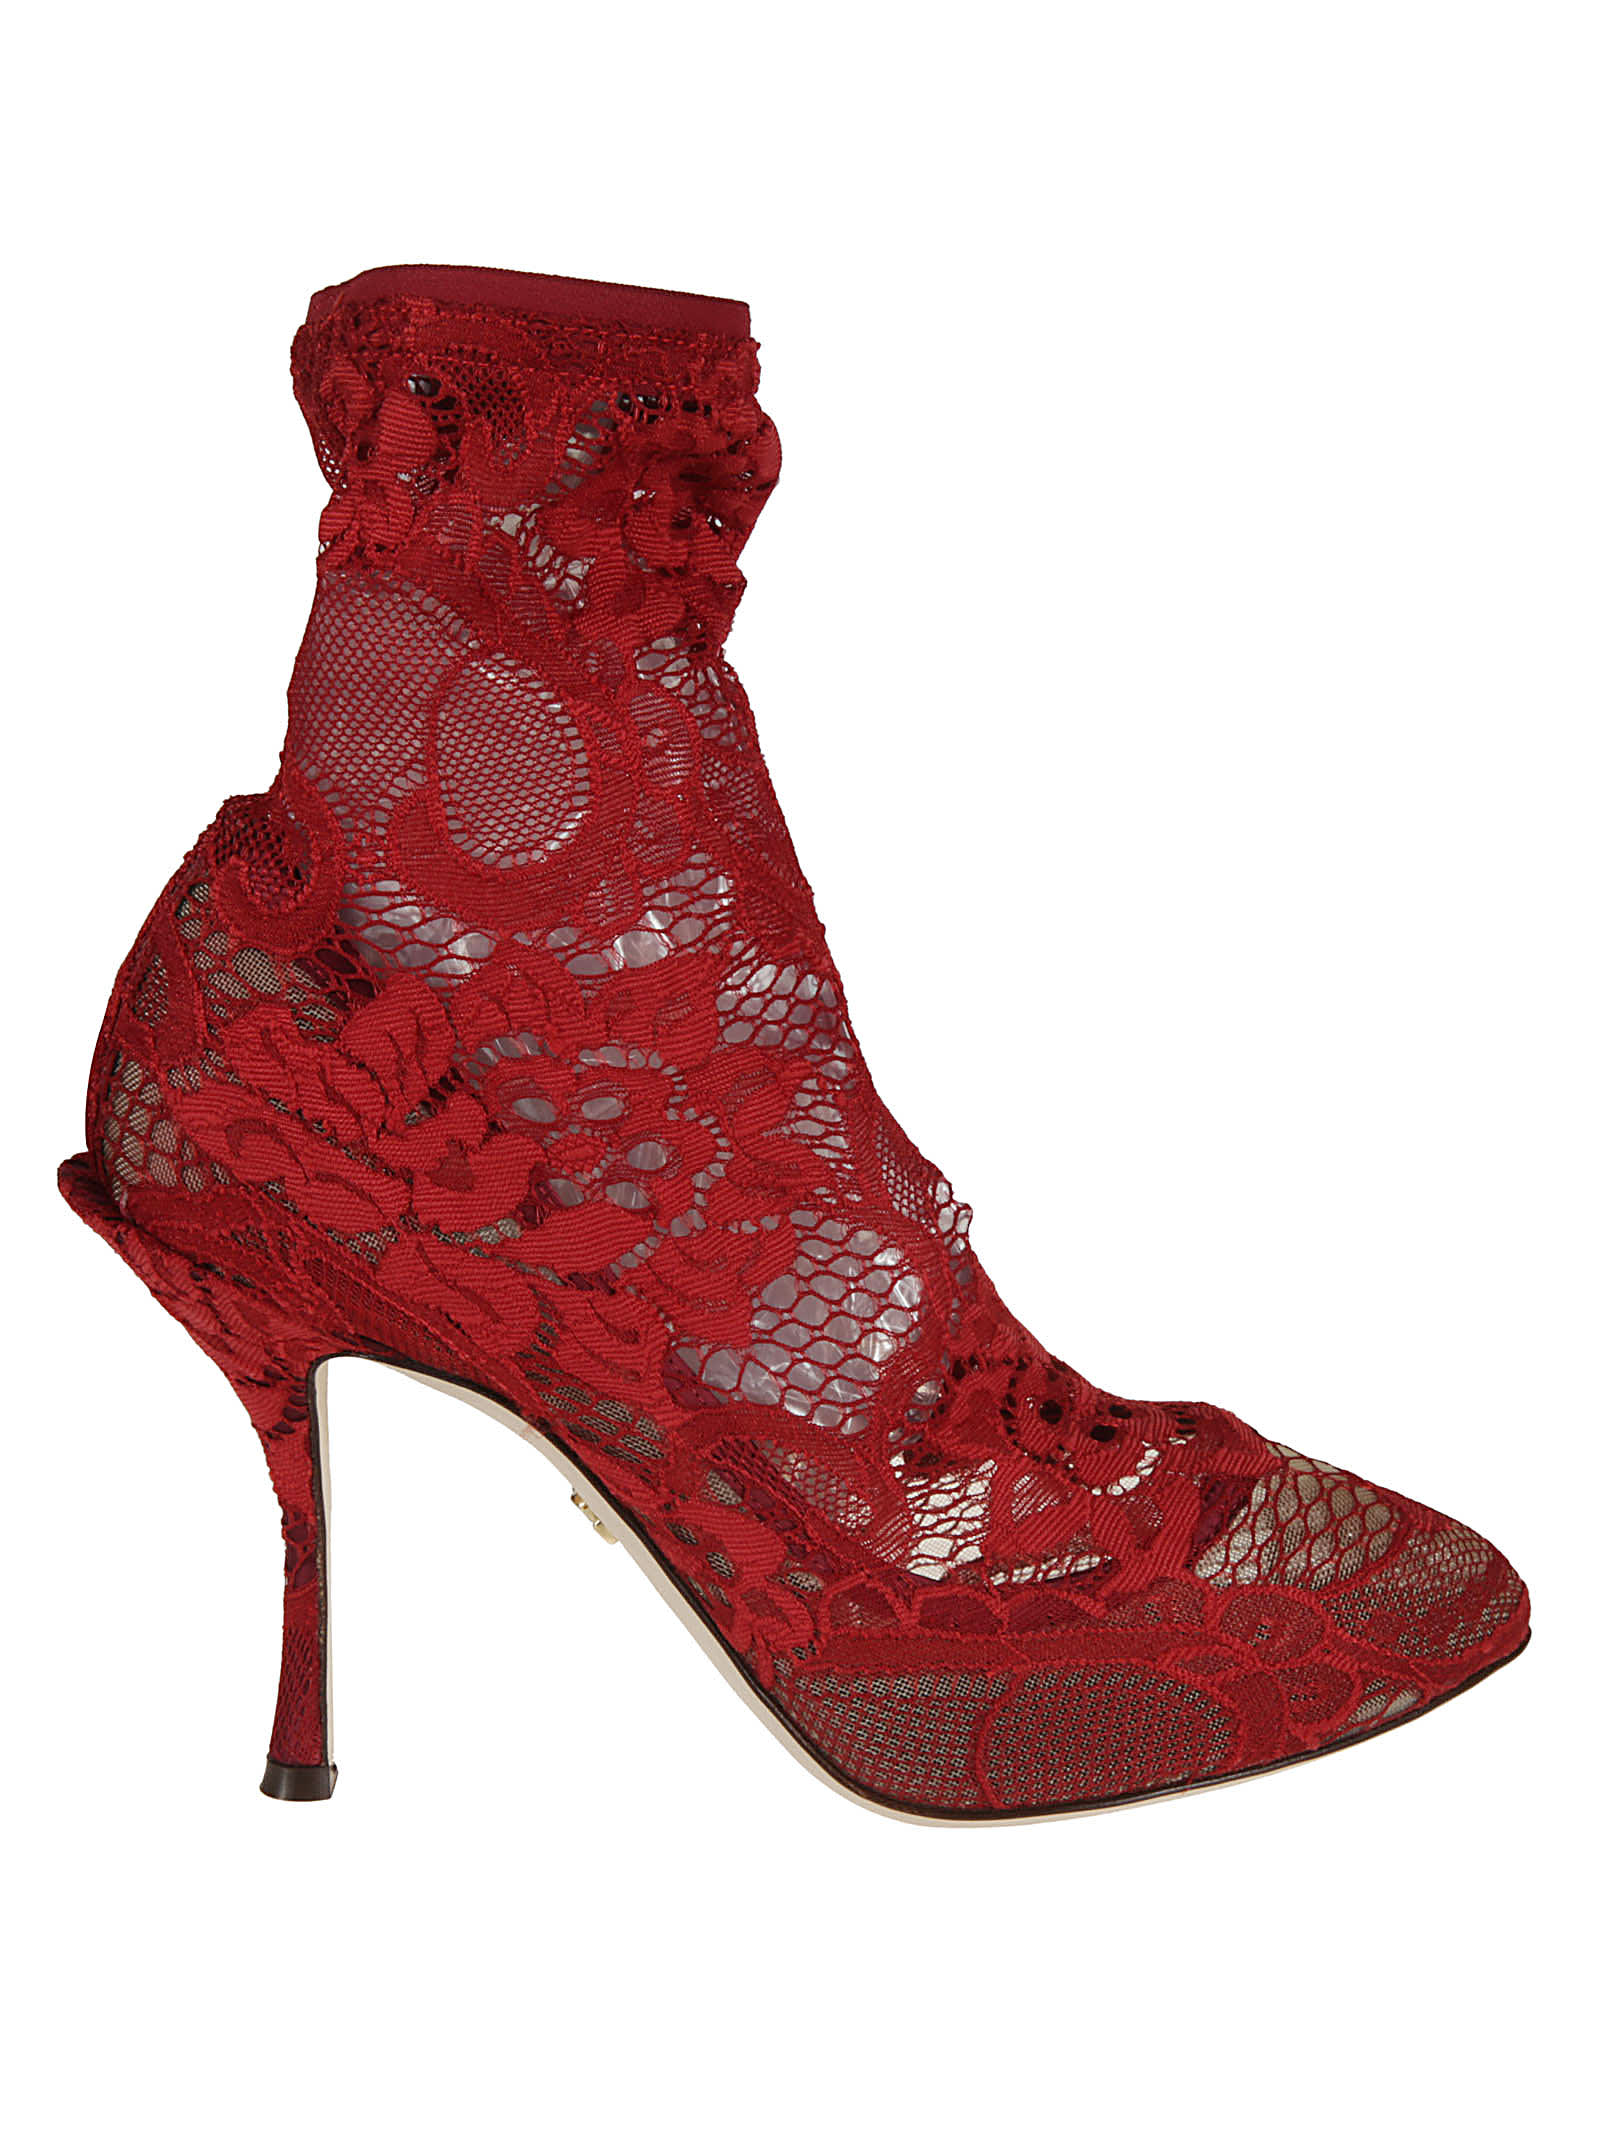 Buy Dolce & Gabbana Floral Lace Pumps online, shop Dolce & Gabbana shoes with free shipping